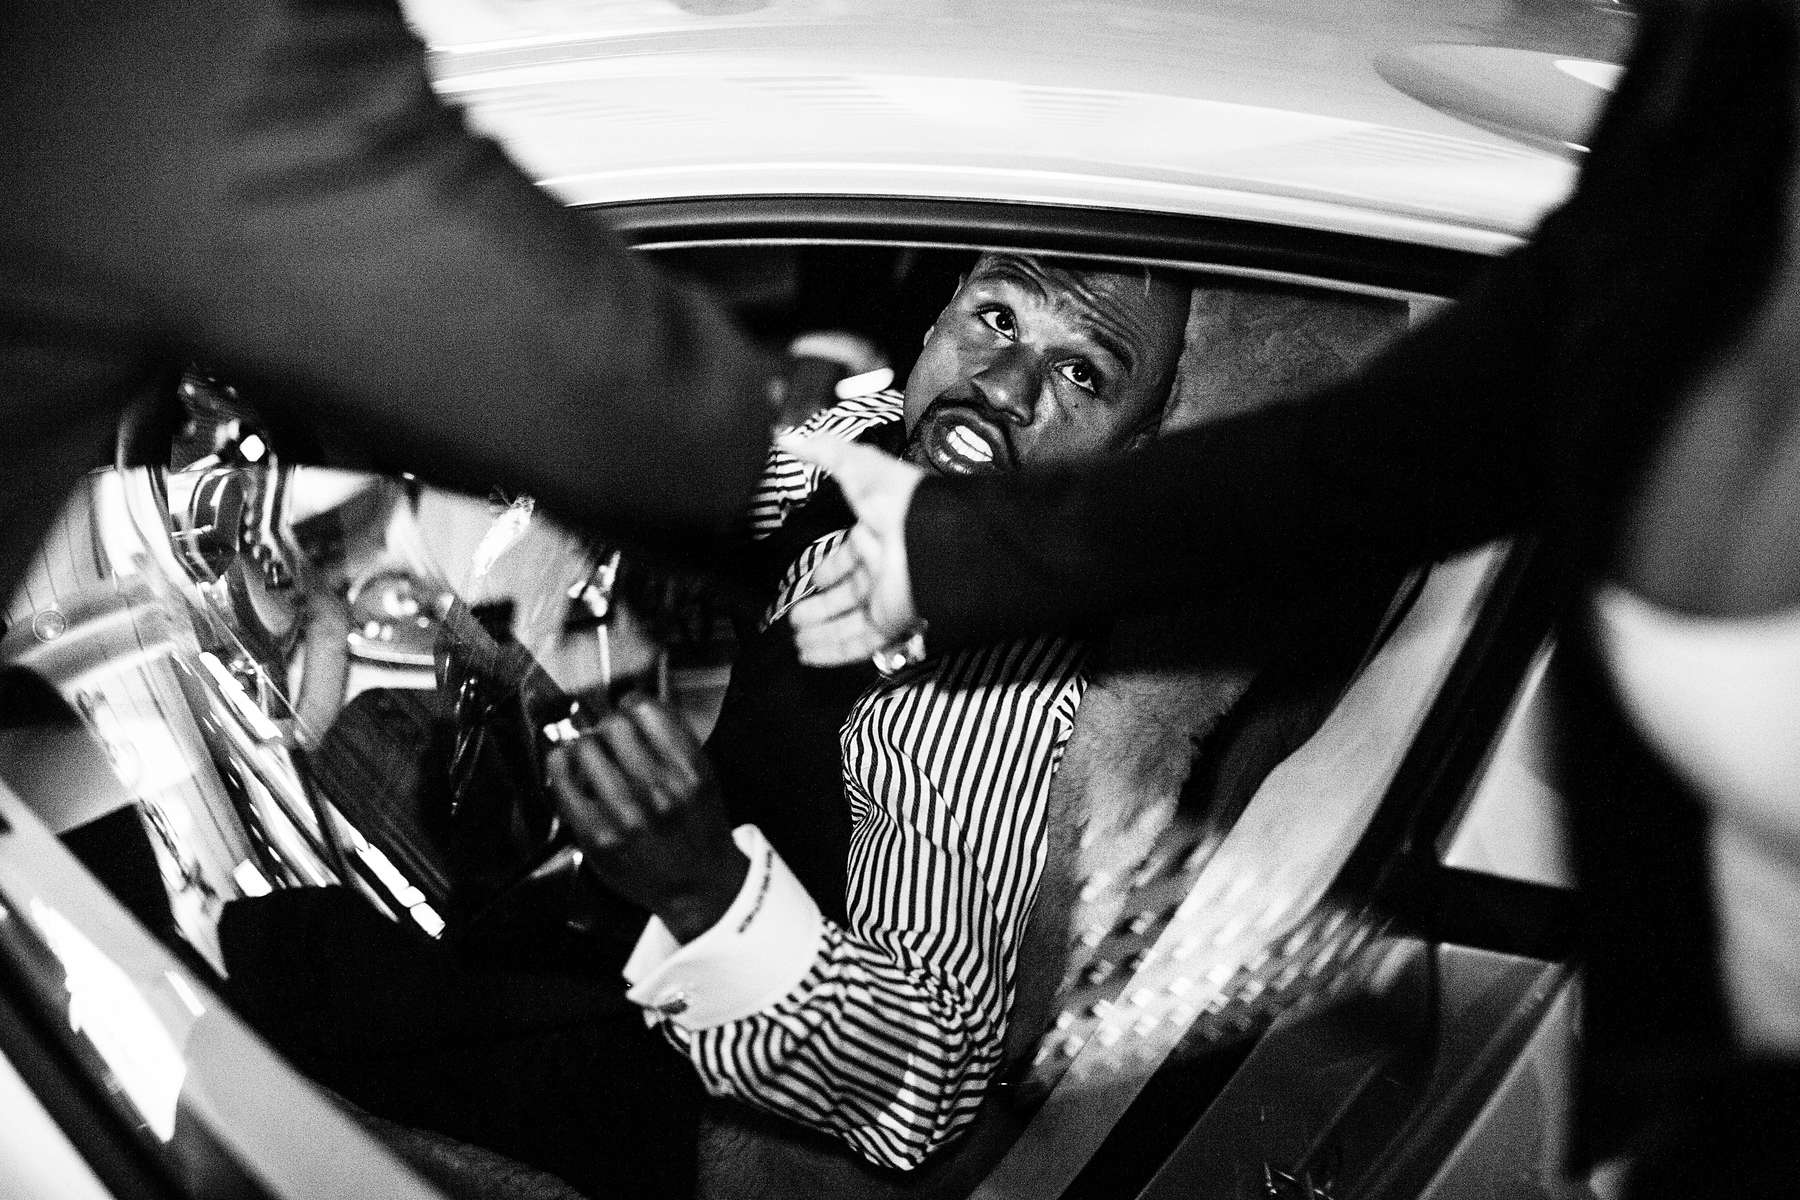 LAS VEGAS, NV - AUGUST 11: Mayweather drops a heavy tip on the valet entrusted with his Bugatti Veyron following a black tie dinner for the Nevada Boxing Hall of Fame. (Photo by Benjamin Lowy/Reportage by Getty Images)